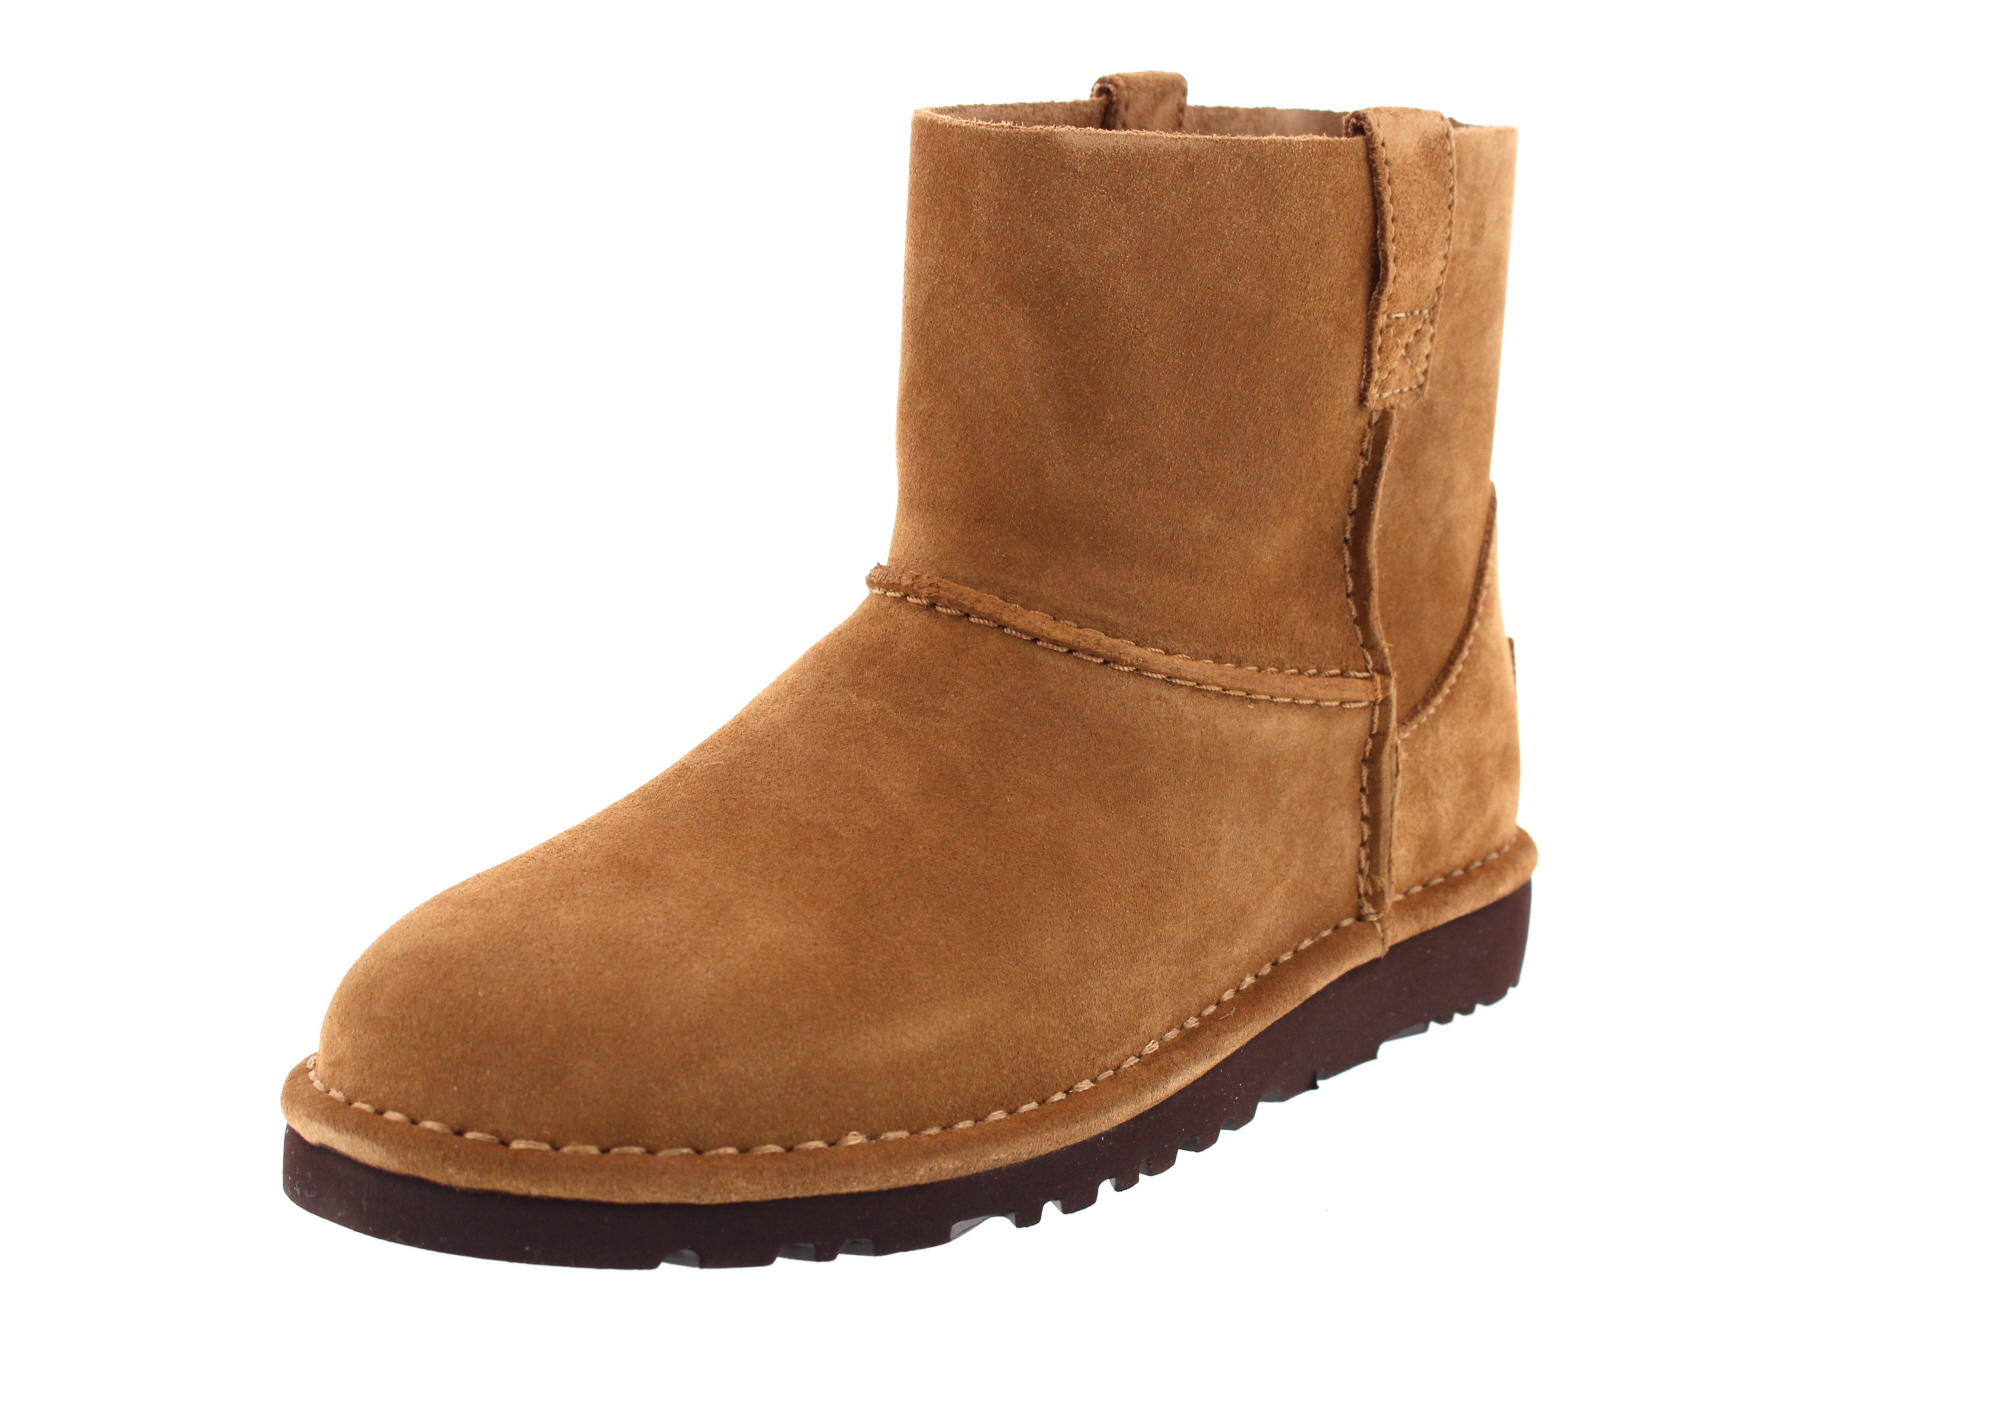 UGG Damenschuhe - CLASSIC UNLINED MINI 1017532 chestnut0